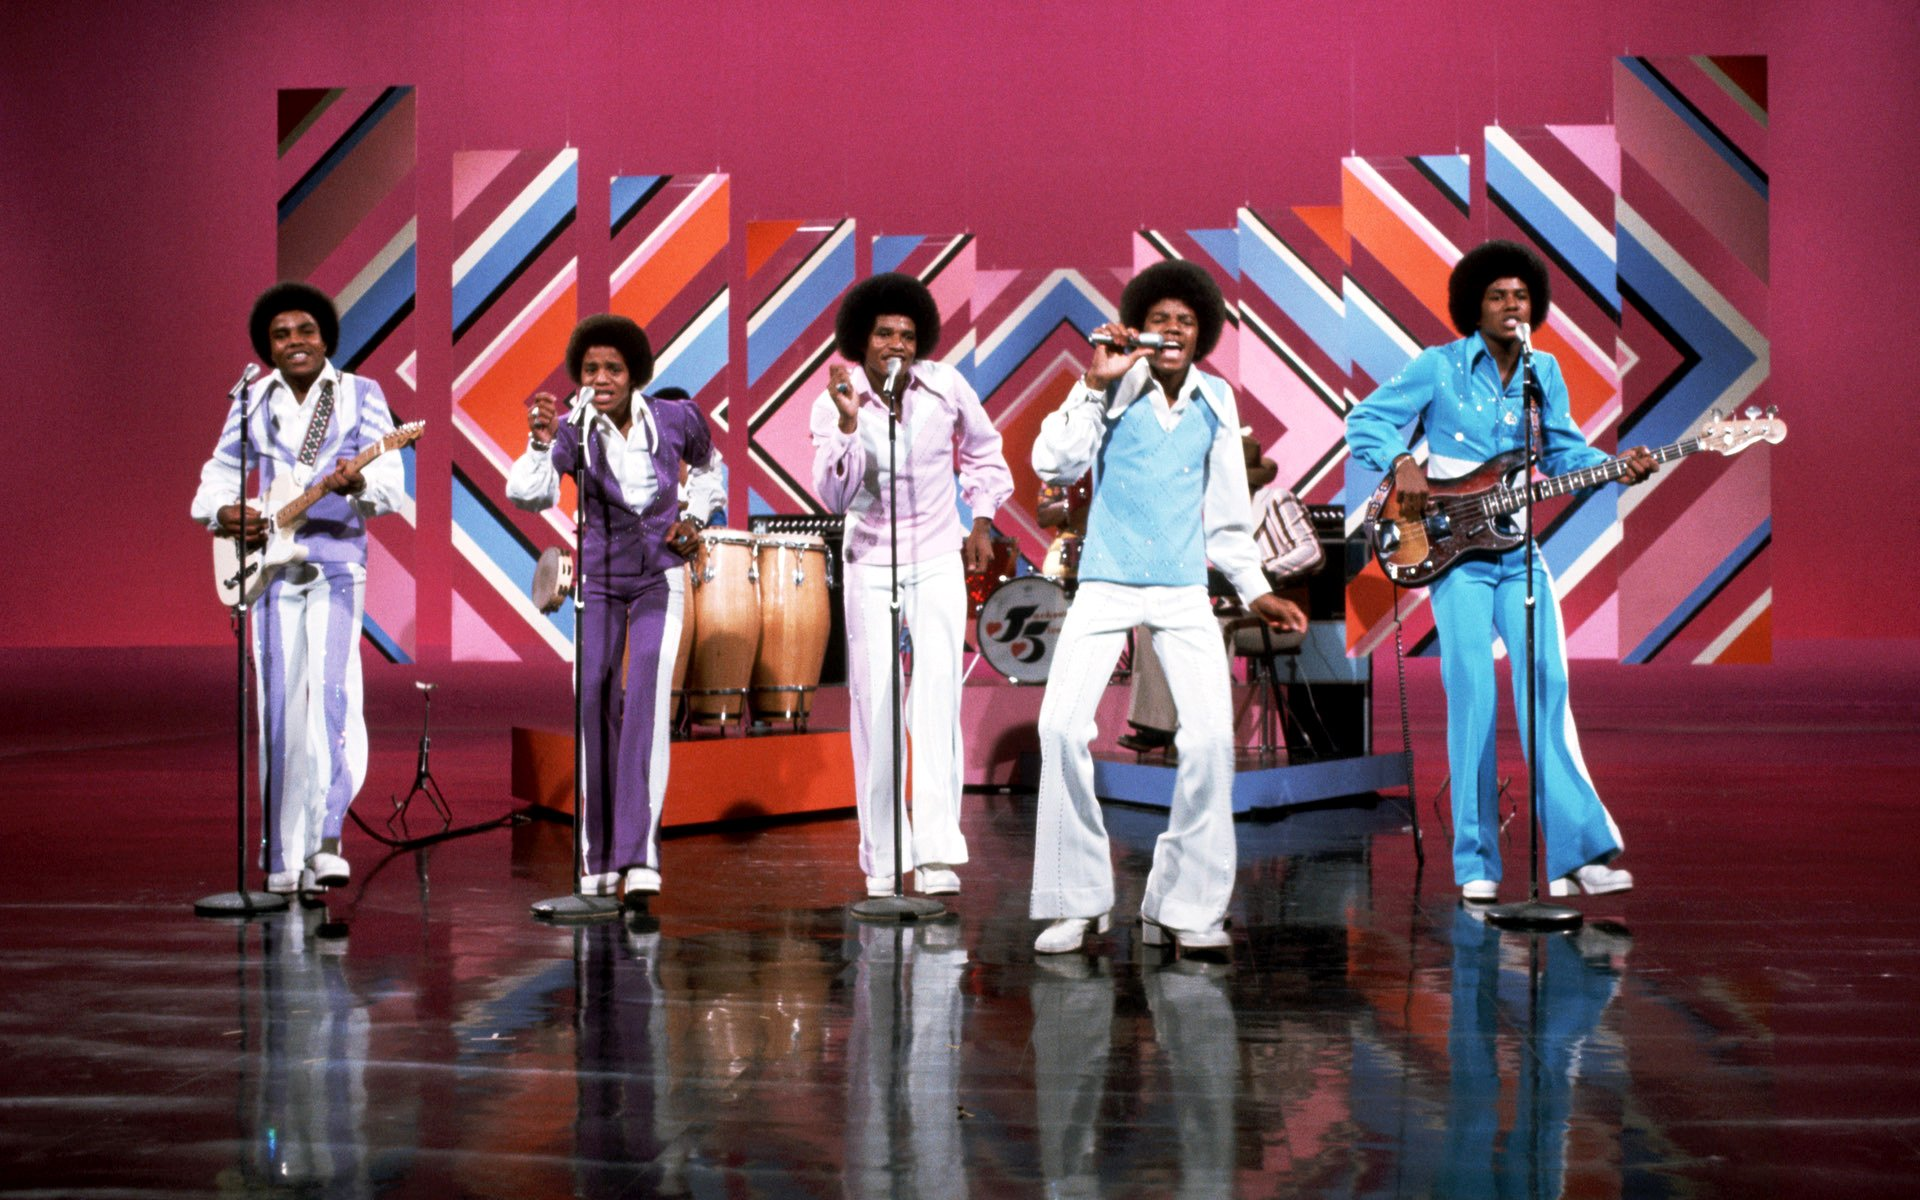 The jackson 5 hd wallpaper background image 1920x1200 for Jackson galaxy band